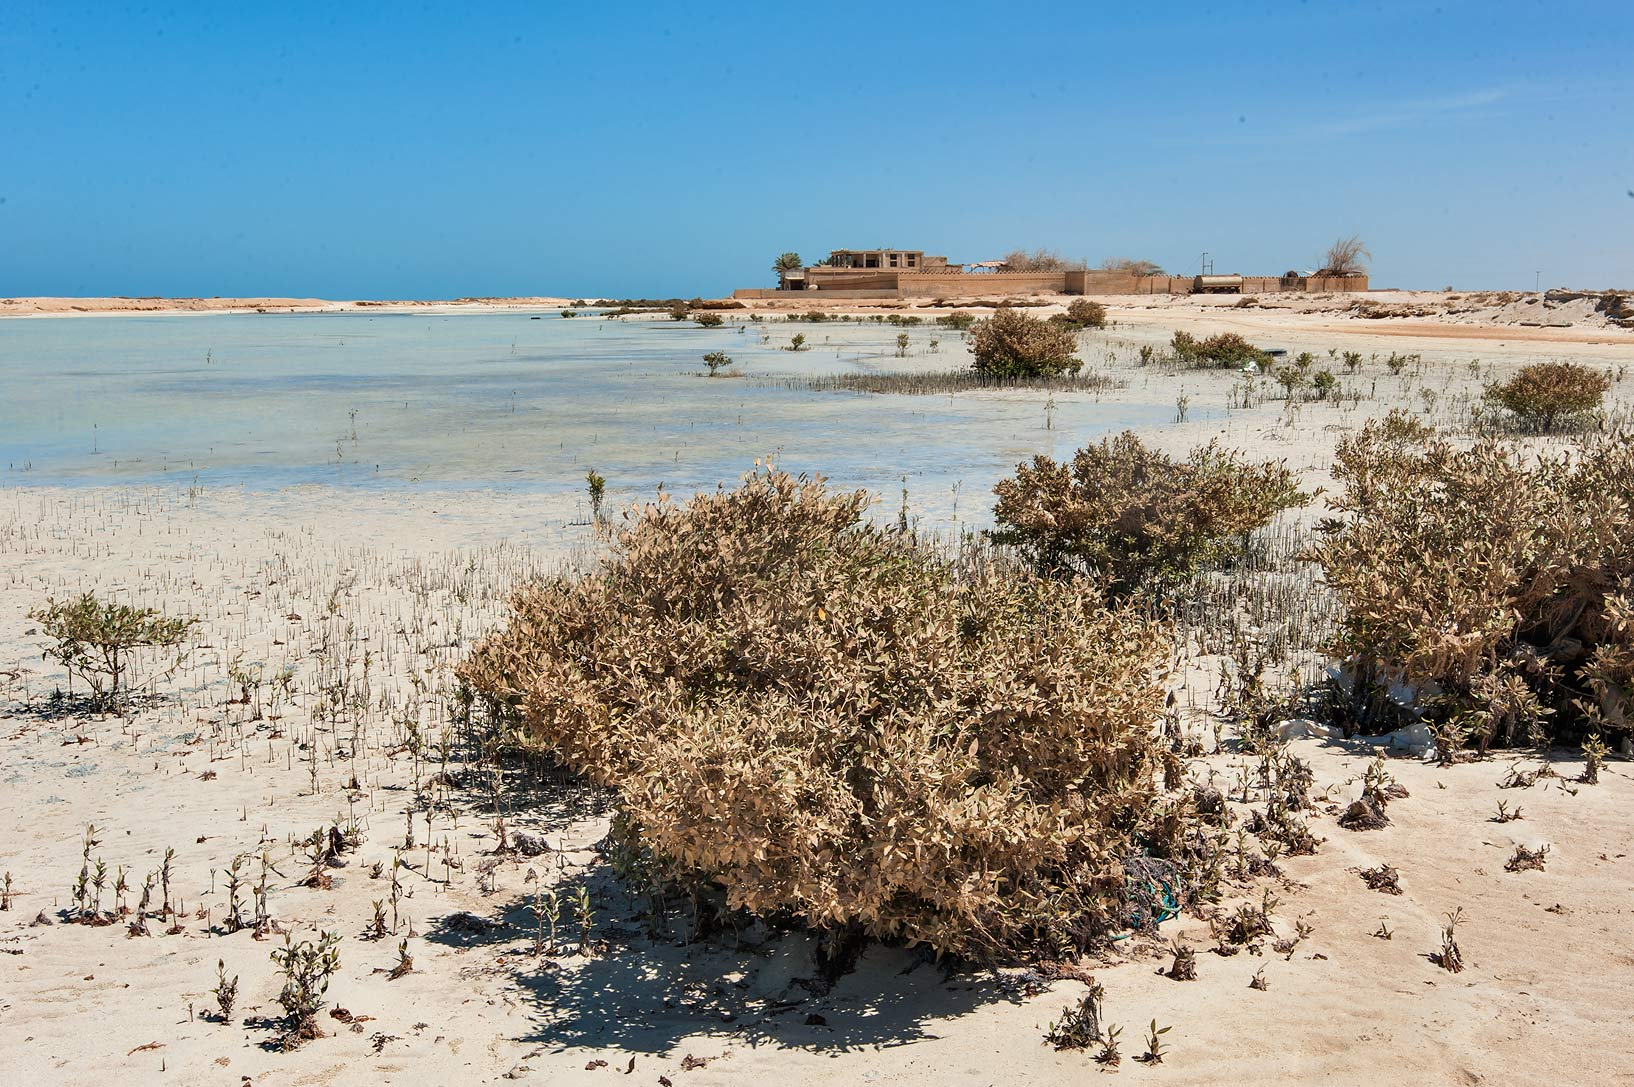 Dusty lagoon in Khasooma area. Ruwais, Northern Qatar